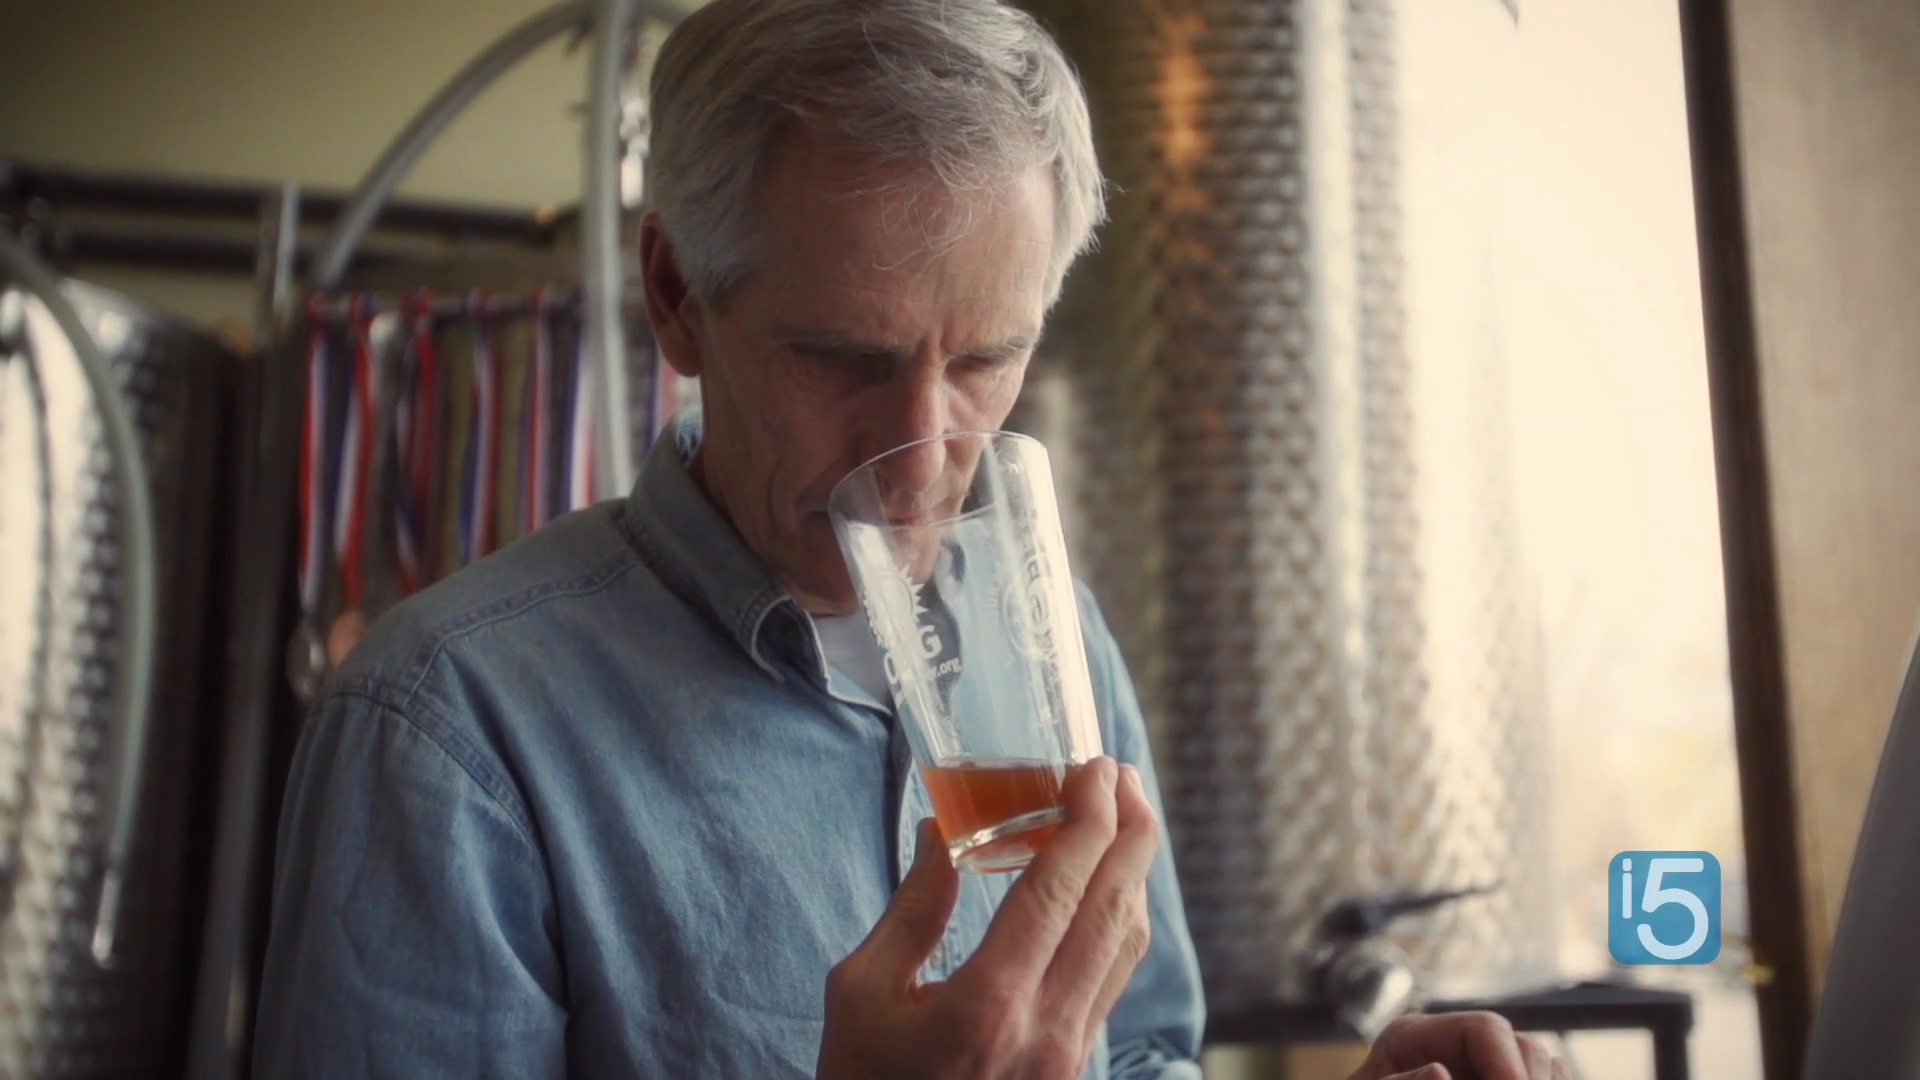 tom hennessy on the art of brewing craft beer infusion5 rh infusion5 com User Manual Ryobi Weed Eater Operations Manual